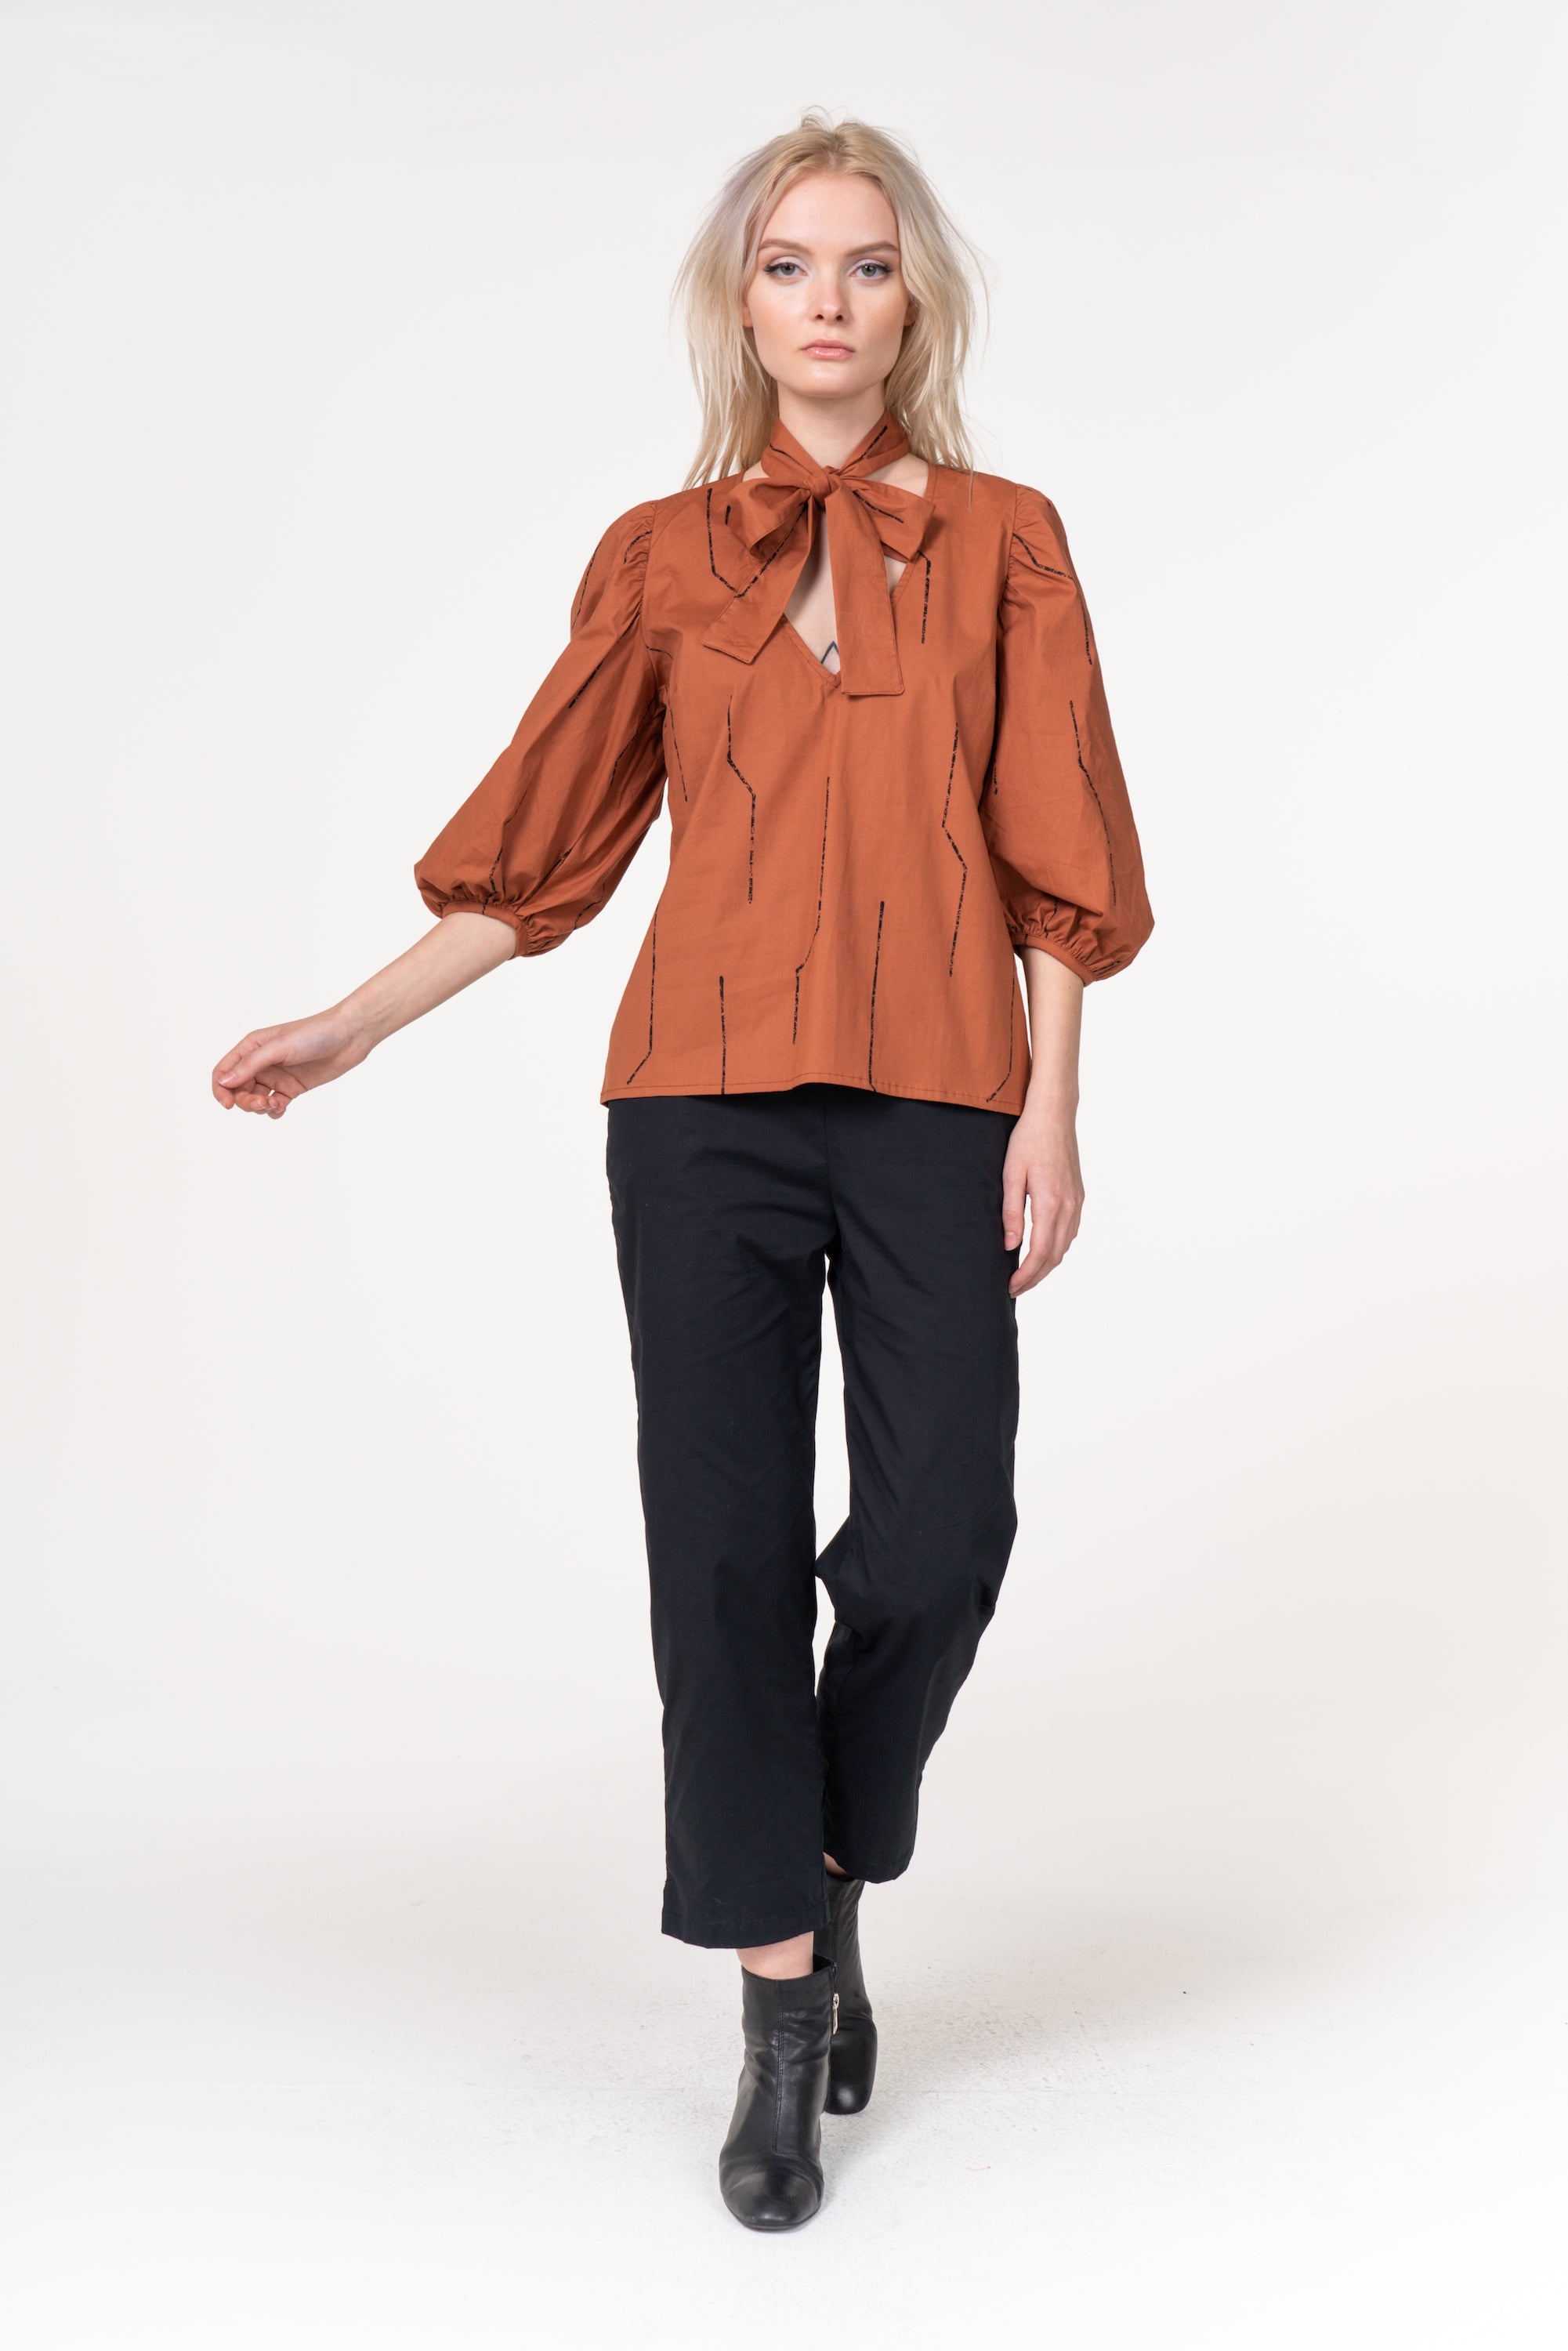 Yeva Top | BEL KAZAN | Mocha Lark | Cotton Poplin | Made in Bali